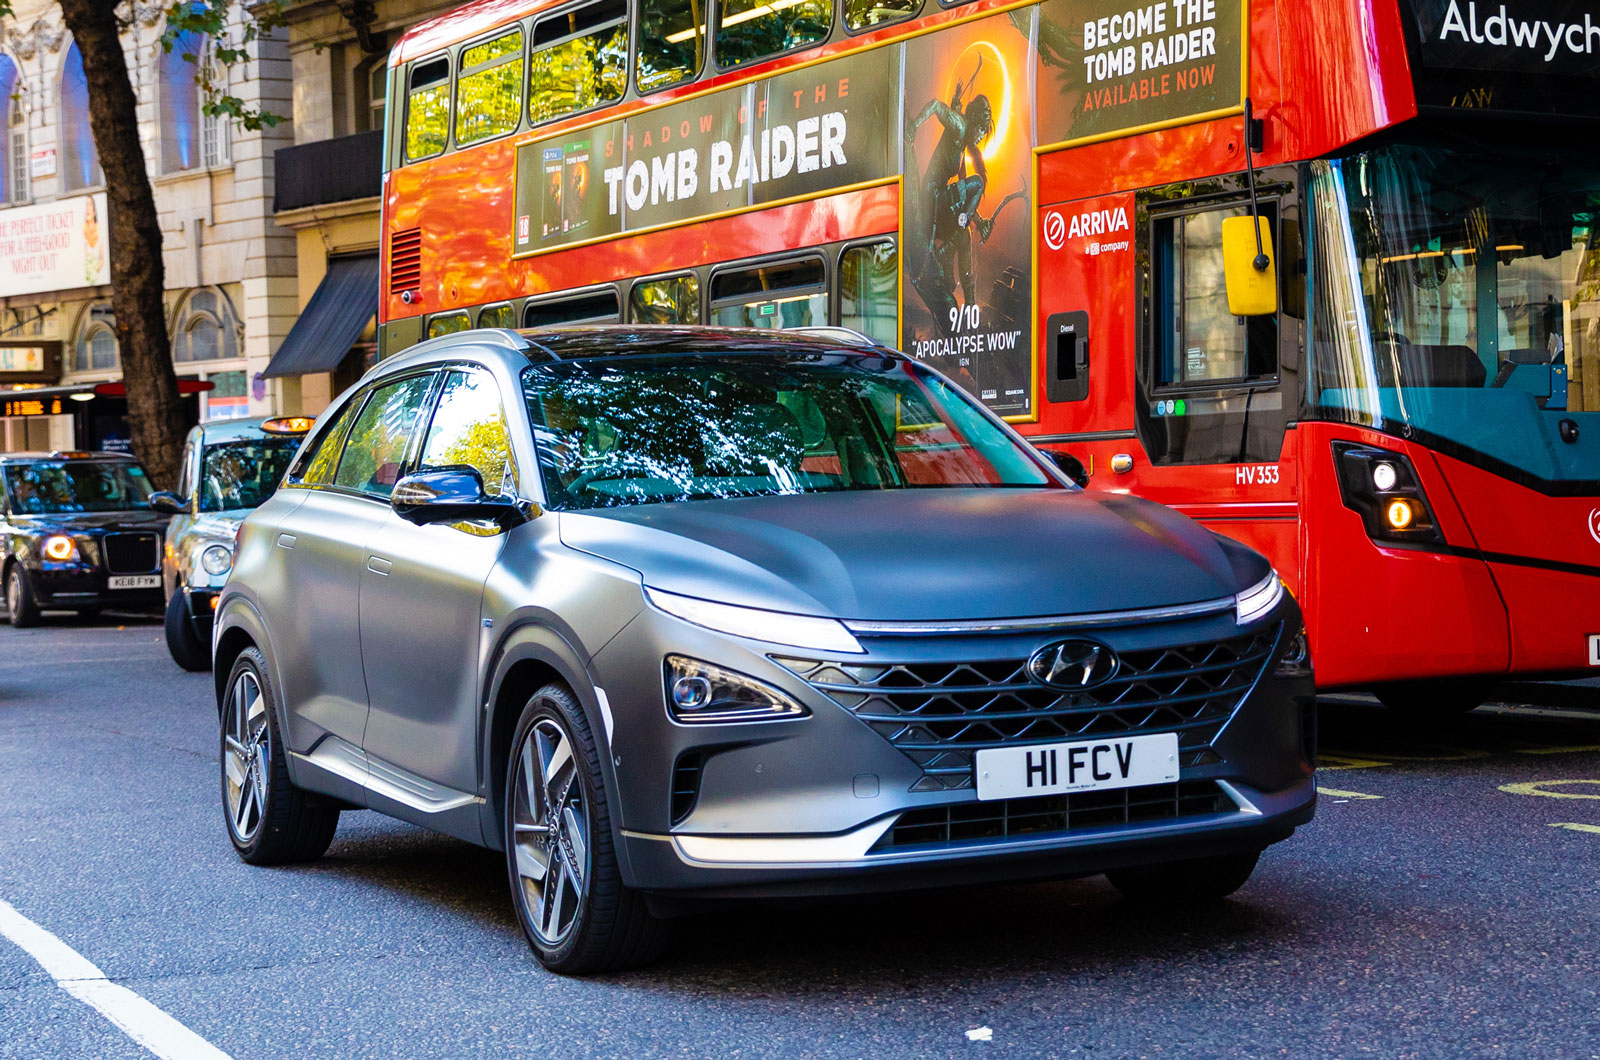 Hydrogen Cars: What Is A Hydrogen Fuel Cell Car?